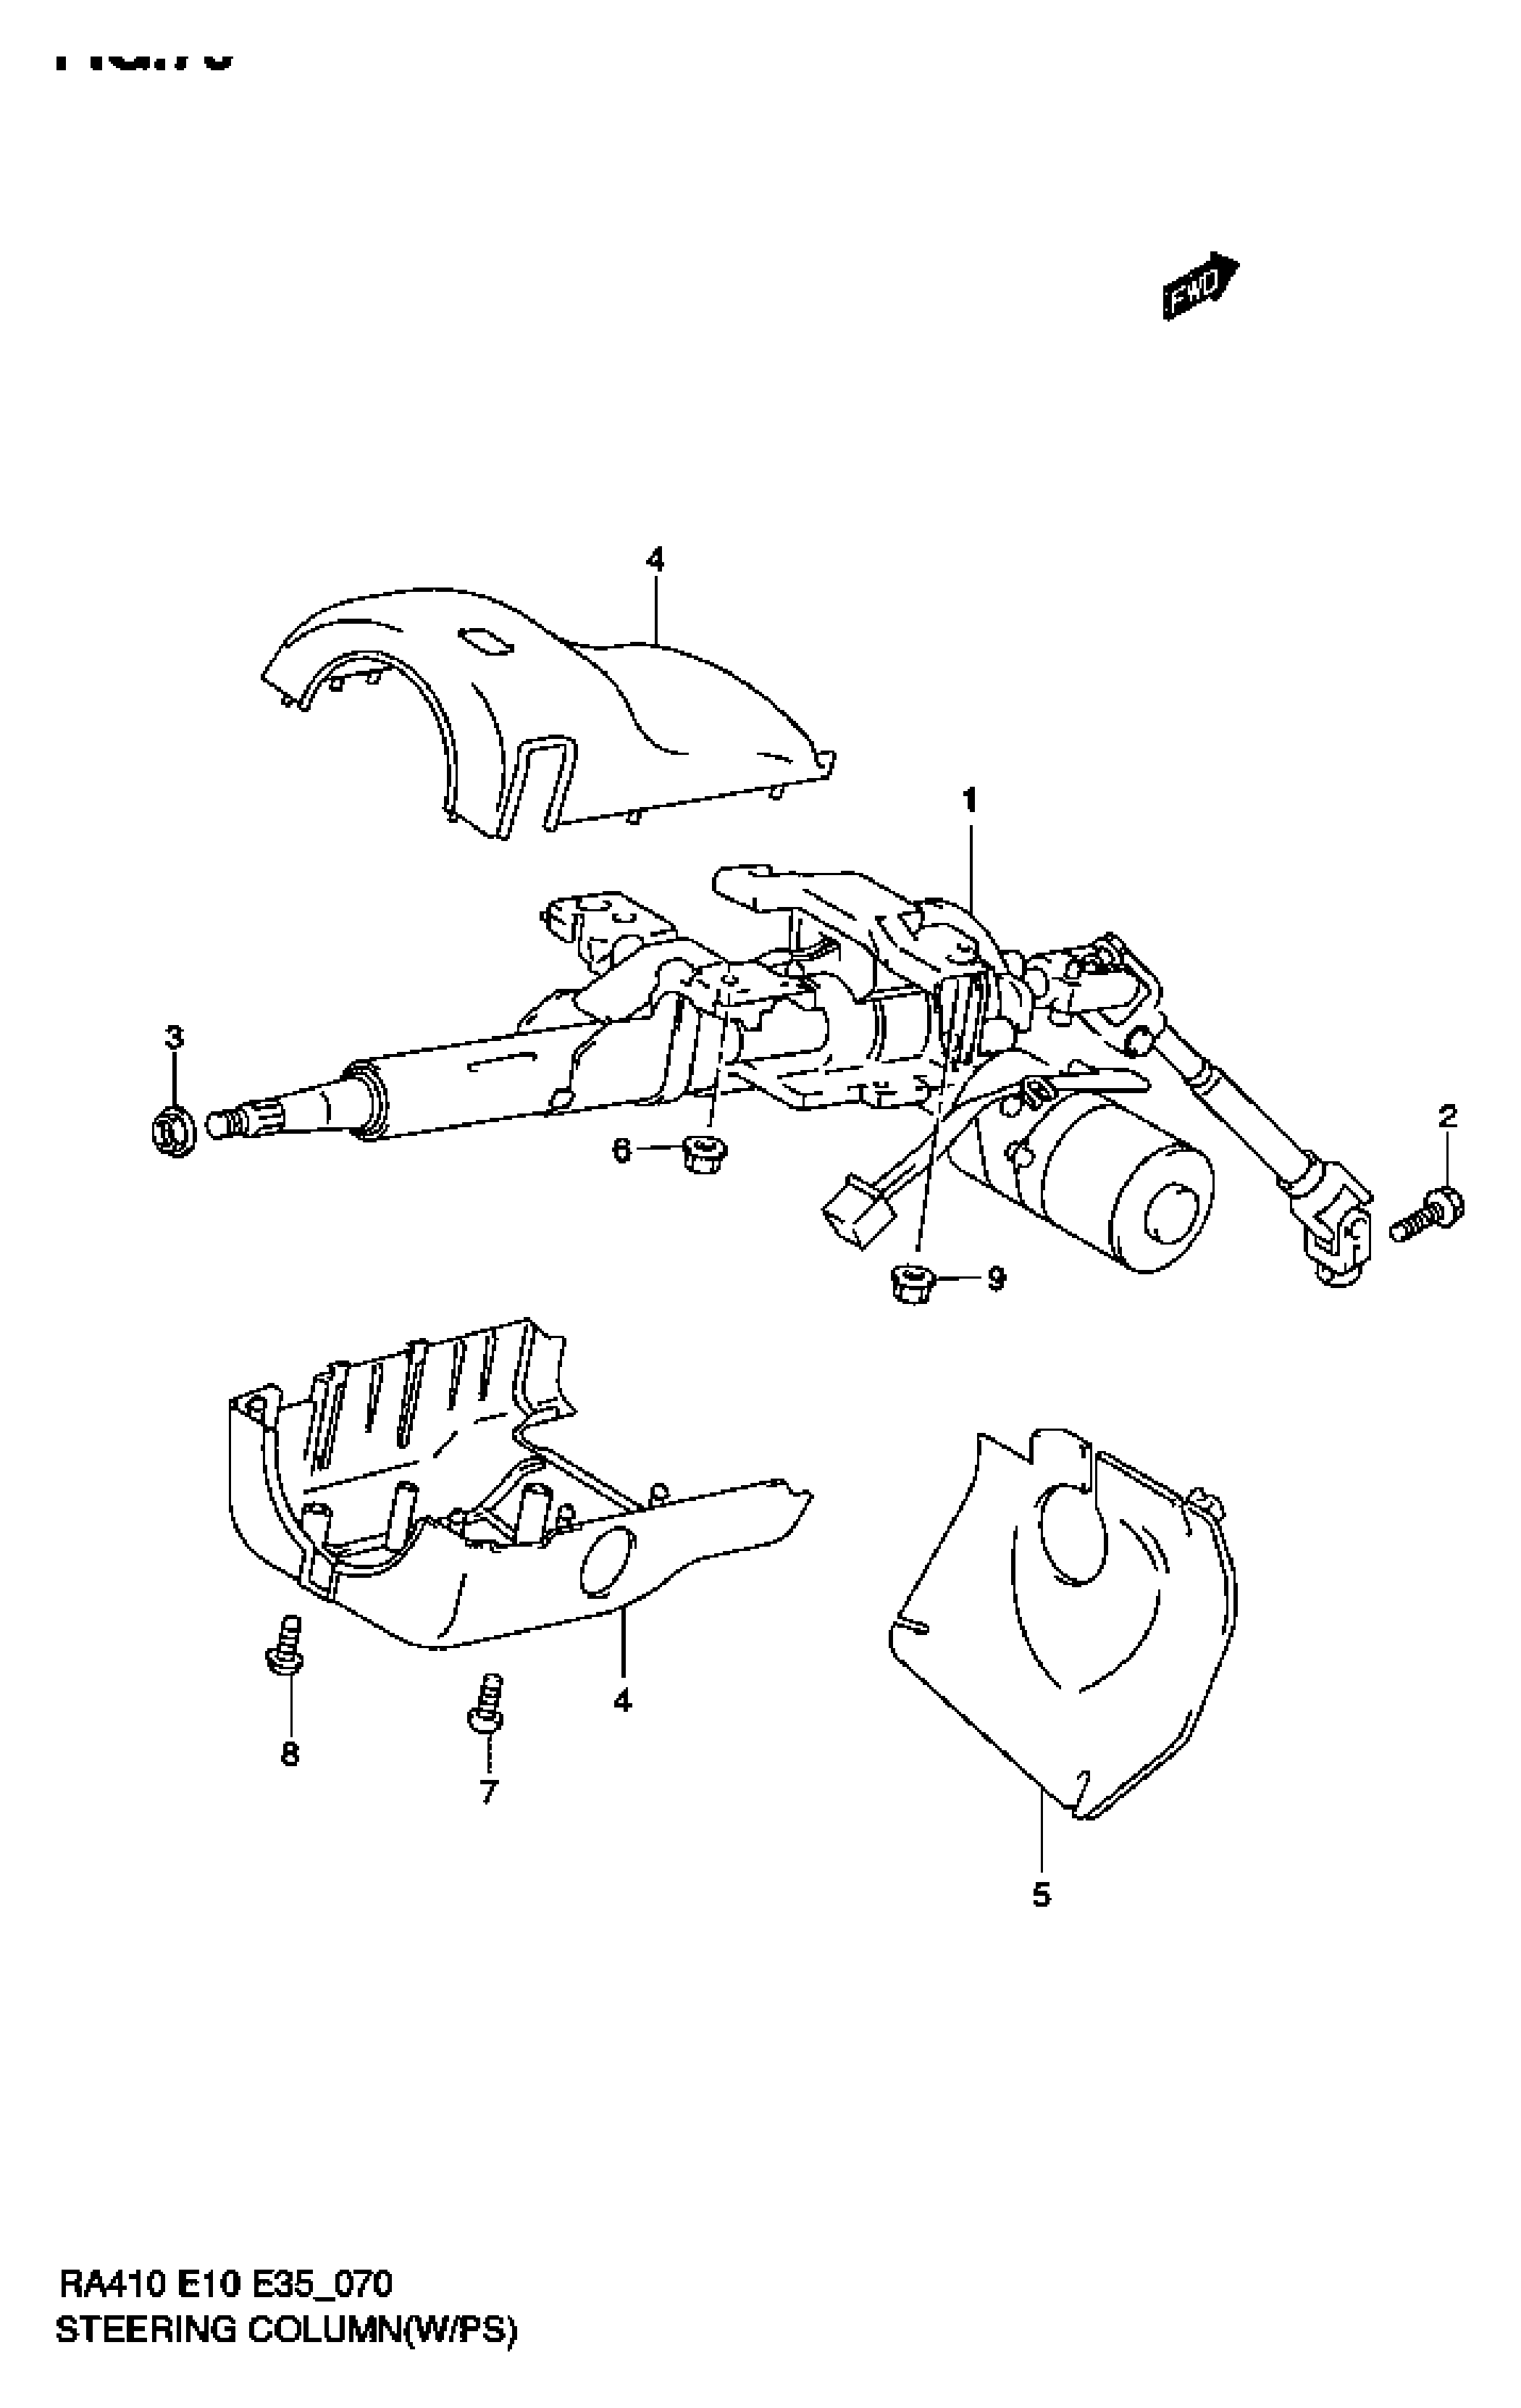 STEERING COLUMN (W/POWER STEERING)